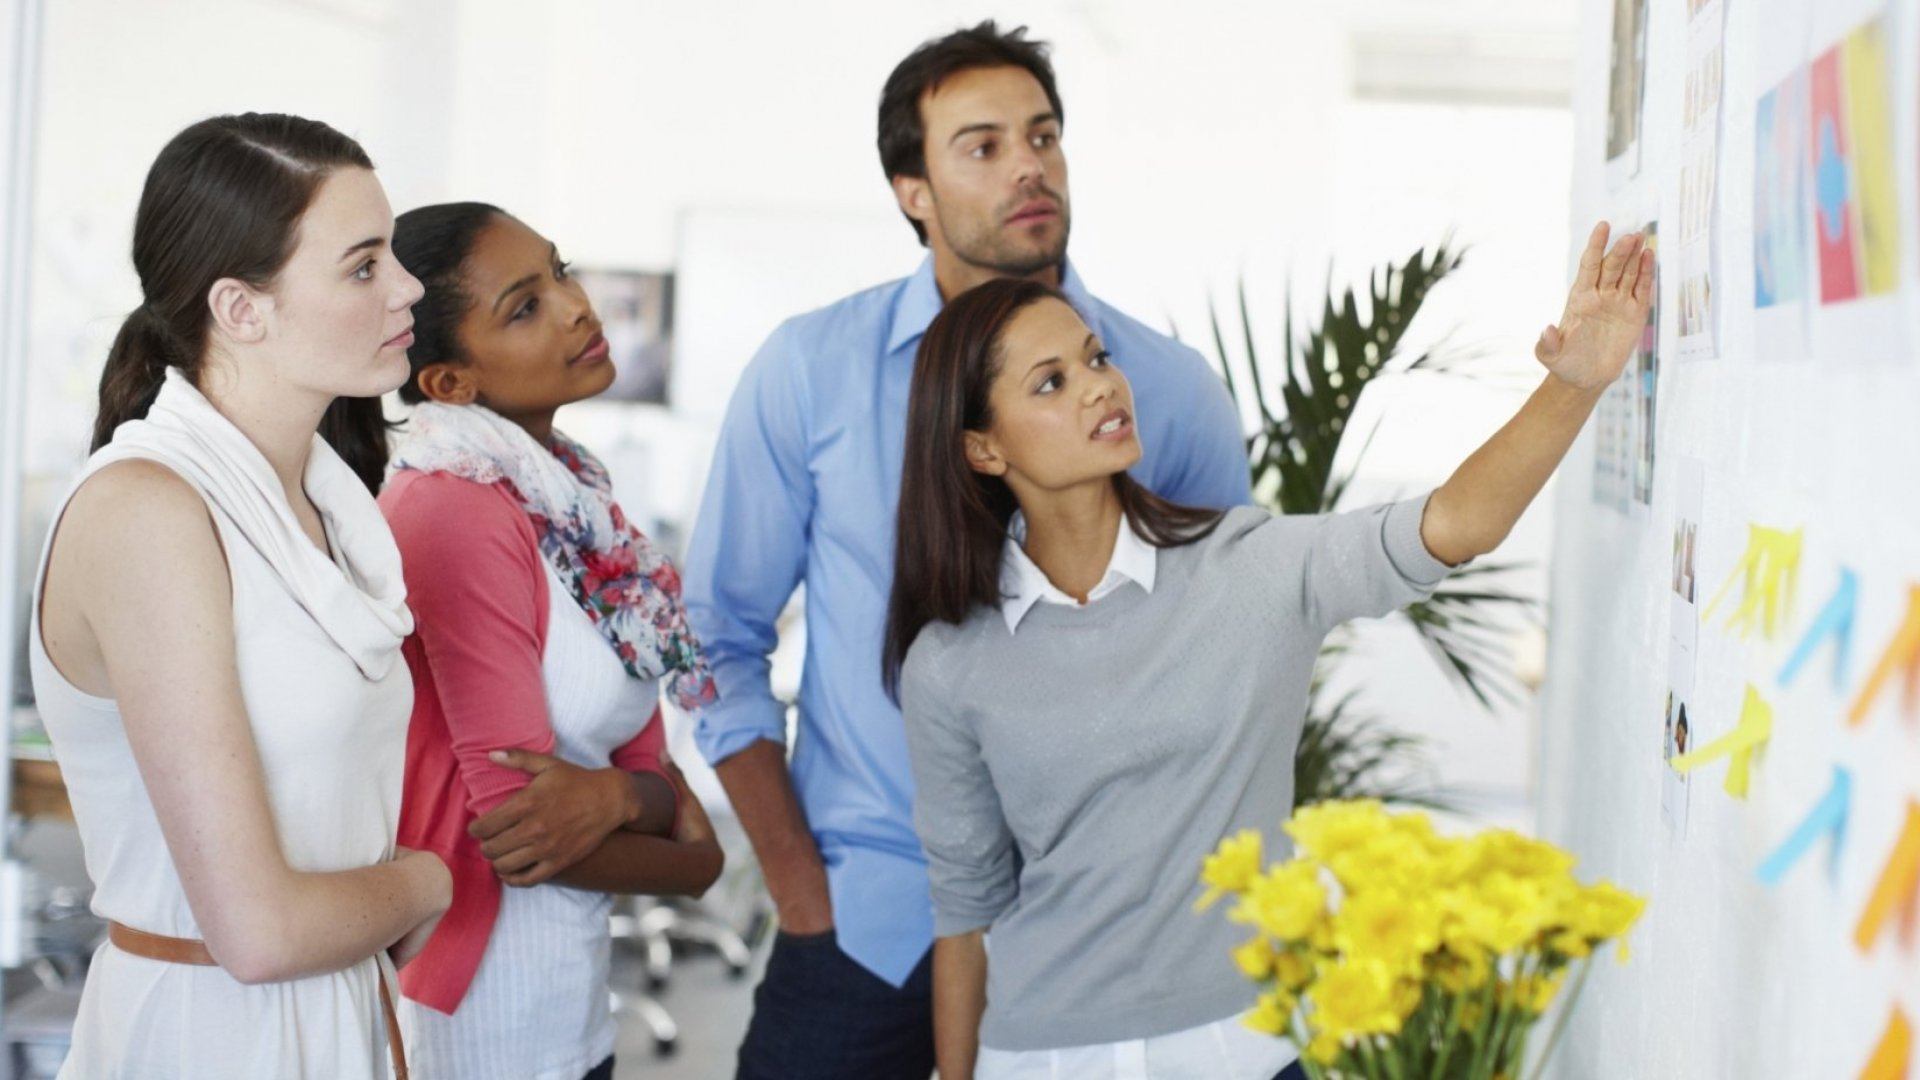 The Top 5 Trends for Small Businesses in 2016